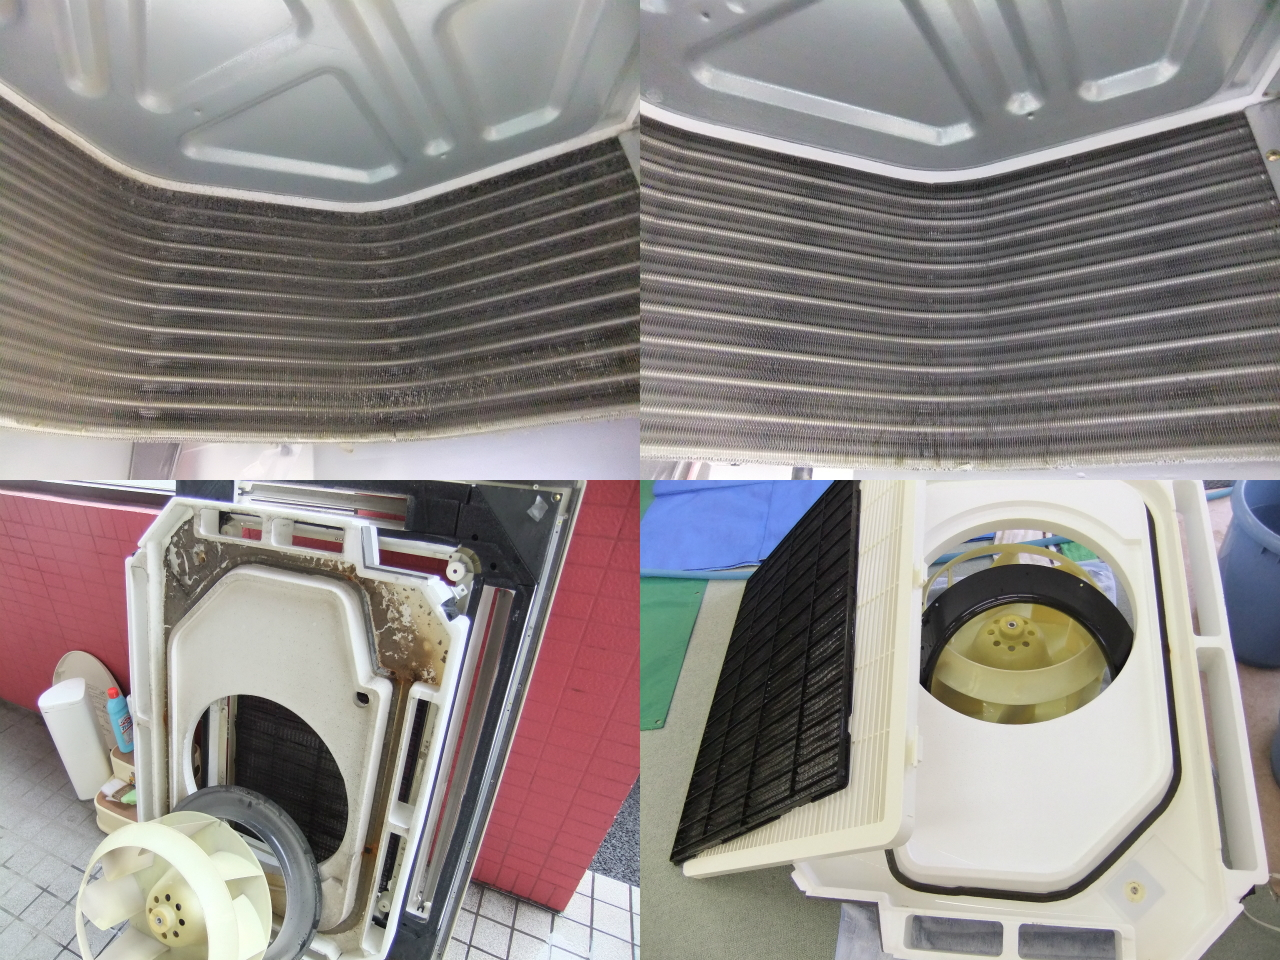 http://ajras.net/images/120207-aircon.jpg